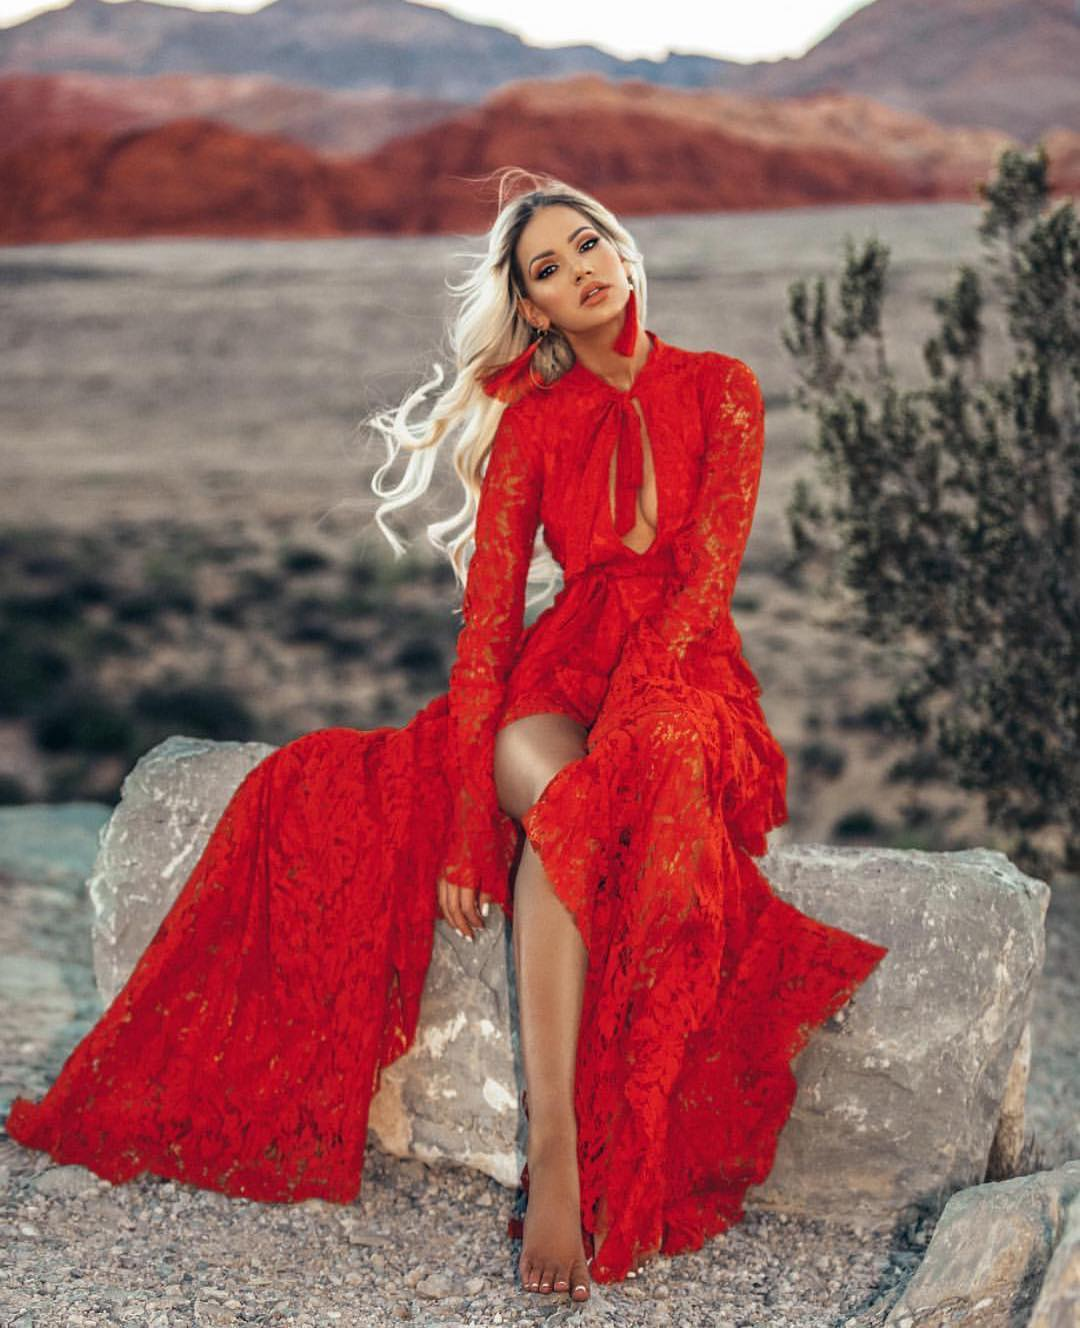 Red Maxi Lace Dress With Deep Cleavage And High Slit For Summer Vacation 2019